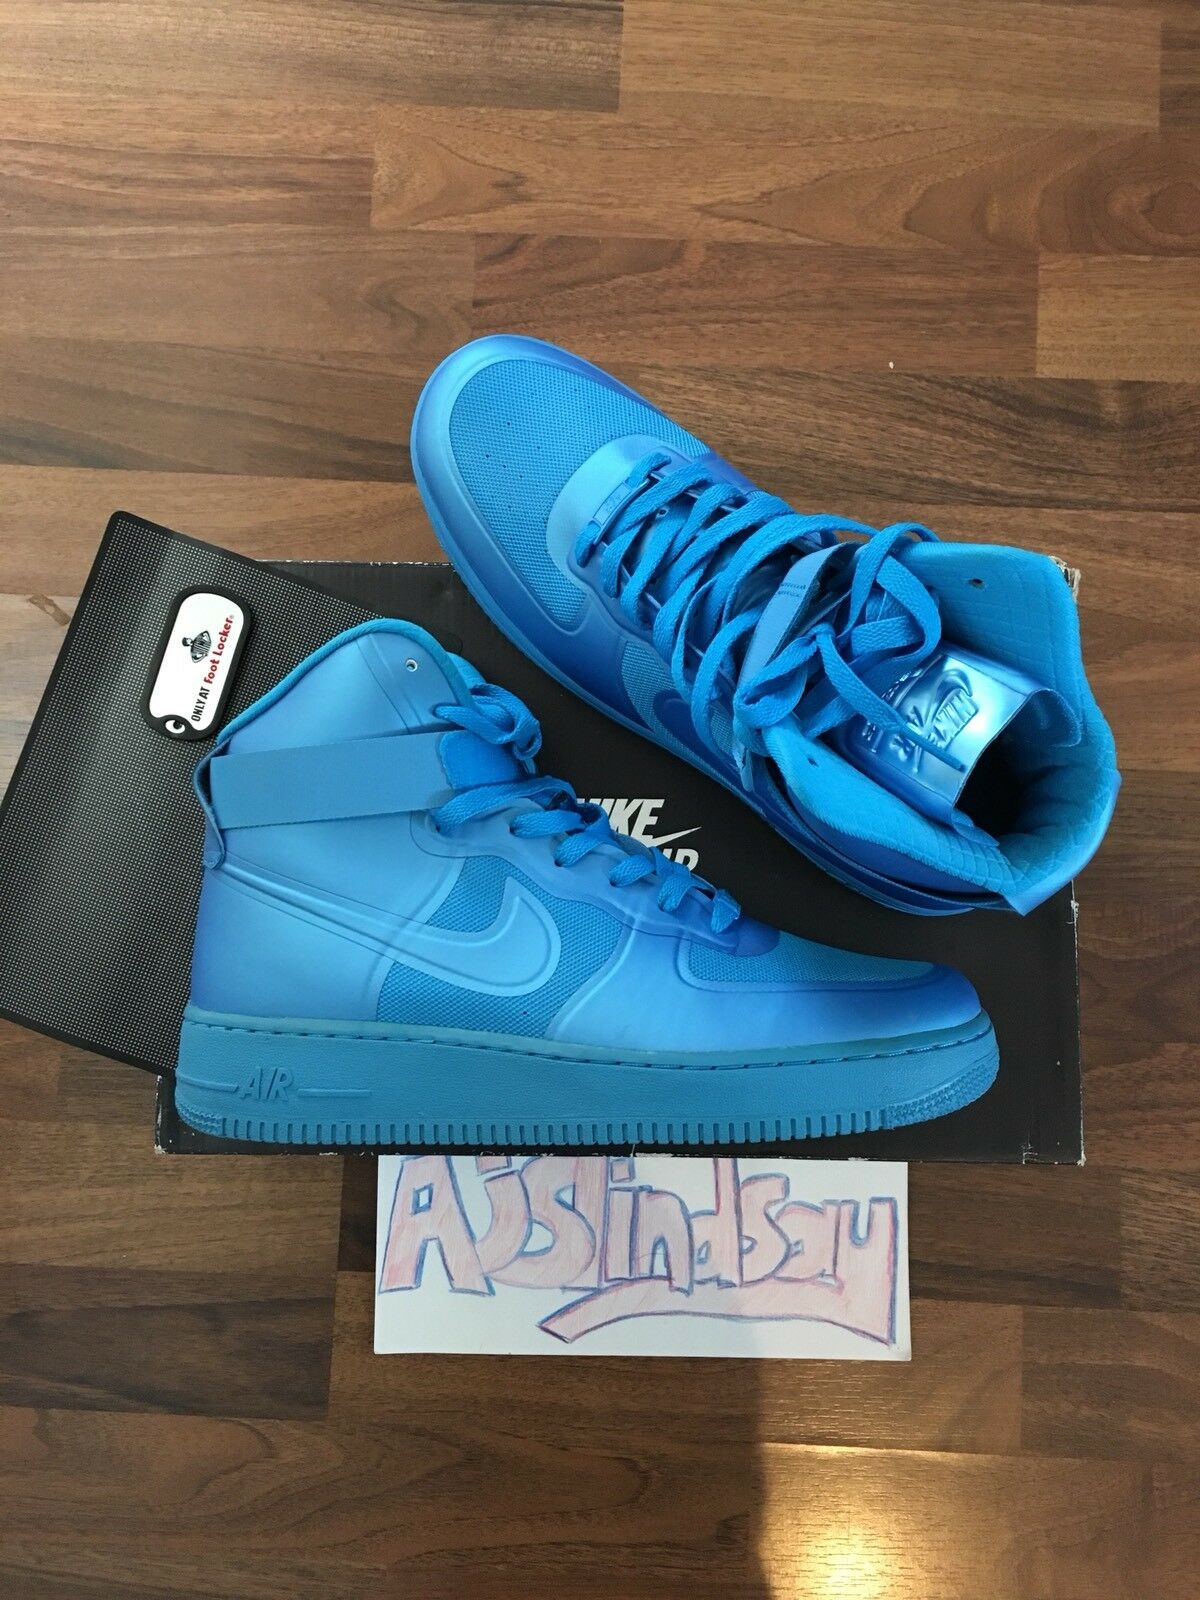 Nike Nike Nike air force 1 hi hyp prm blaue leuchten hyperfuse 2011 uk8 us9 56bf5b